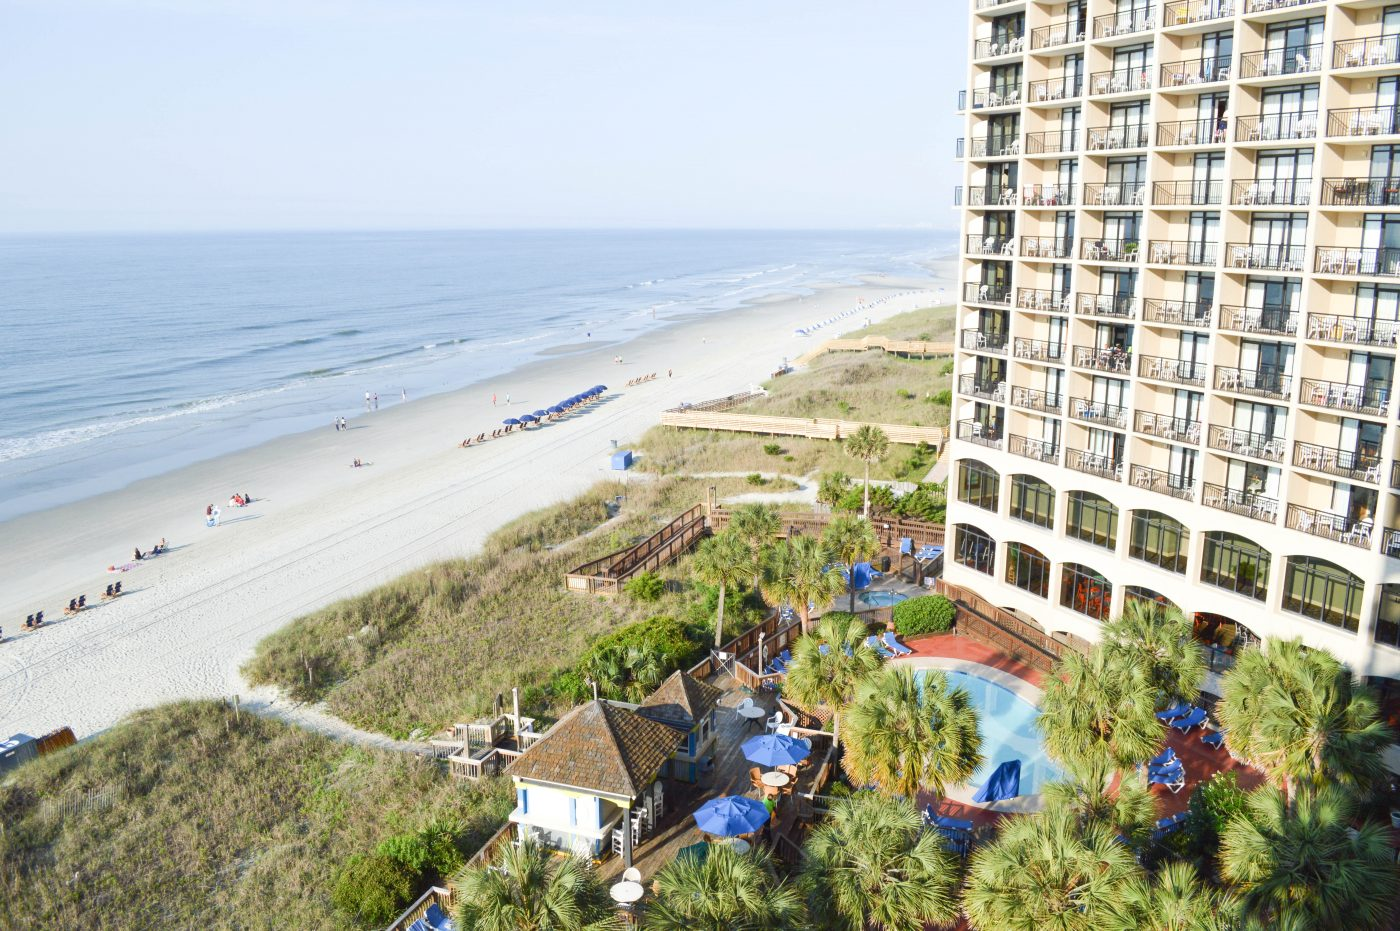 Take the Family to Beach Cove Resort at Myrtle Beach